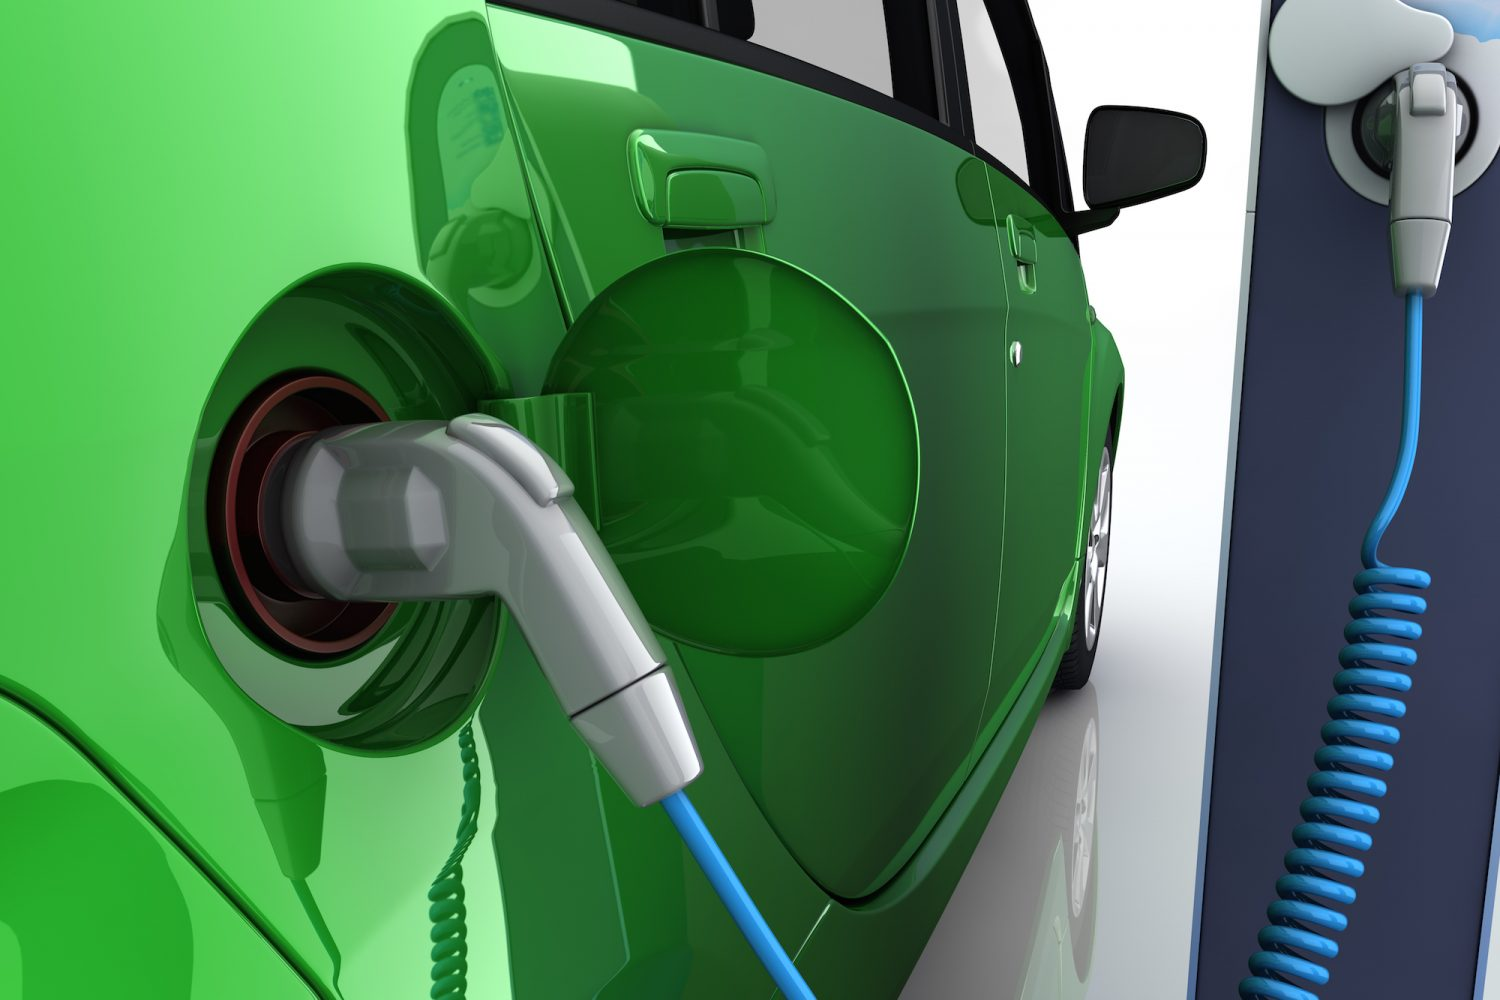 Green electric car at charging station with power outlet